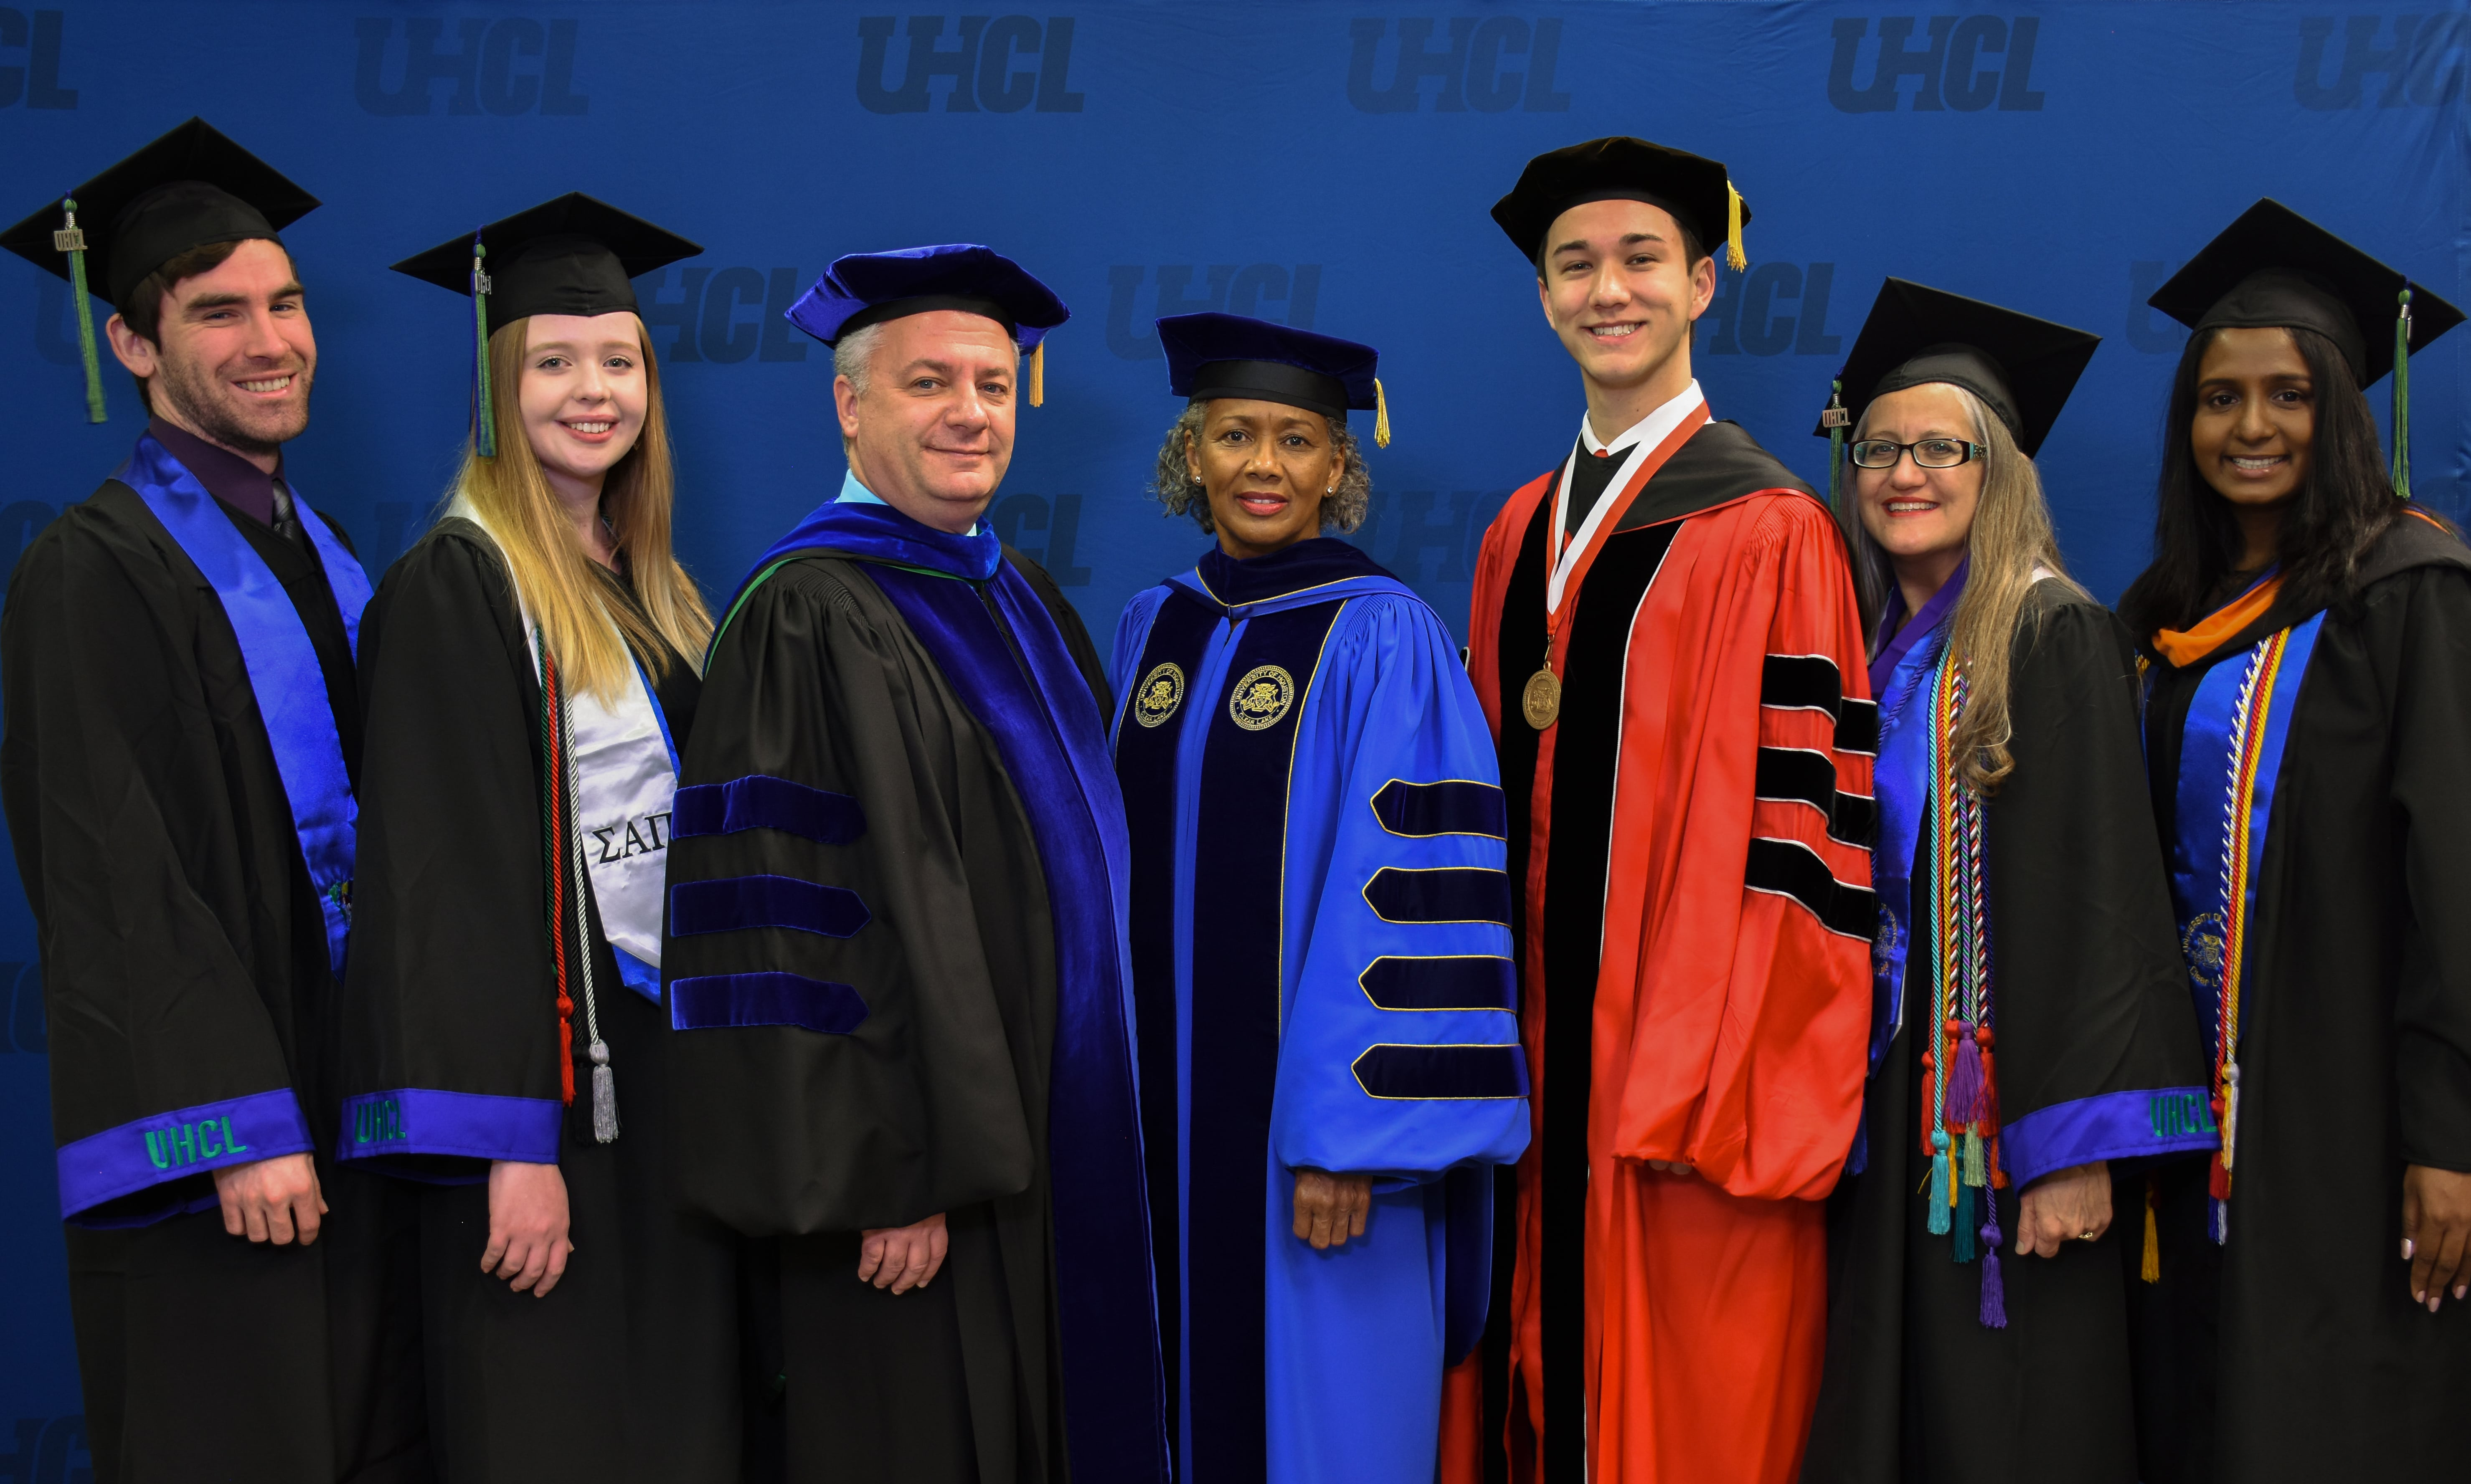 UHCL Fall Commencement 2018